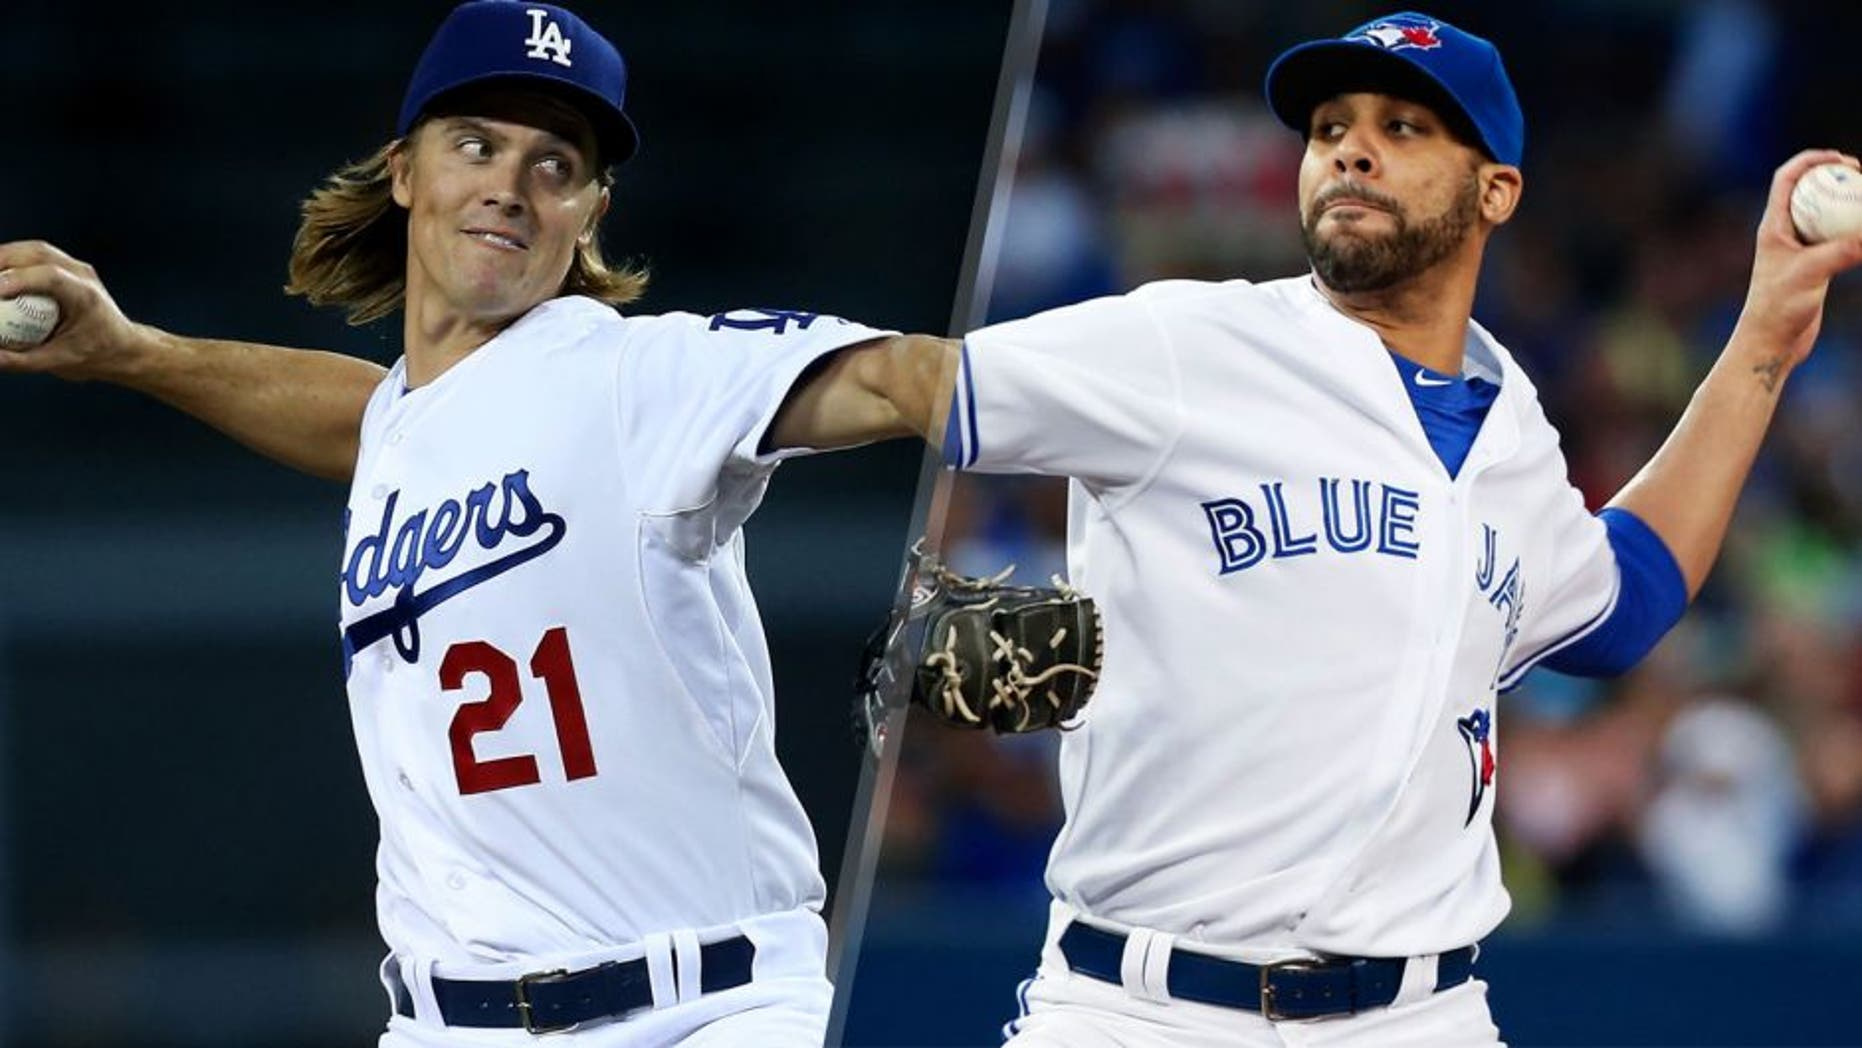 LOS ANGELES, CA - SEPTEMBER 18: Zack Greinke #21 of the Los Angeles Dodgers throws a pitch against the Pittsburgh Pirates at Dodger Stadium on September 18, 2015 in Los Angeles, California. (Photo by Stephen Dunn/Getty Images)